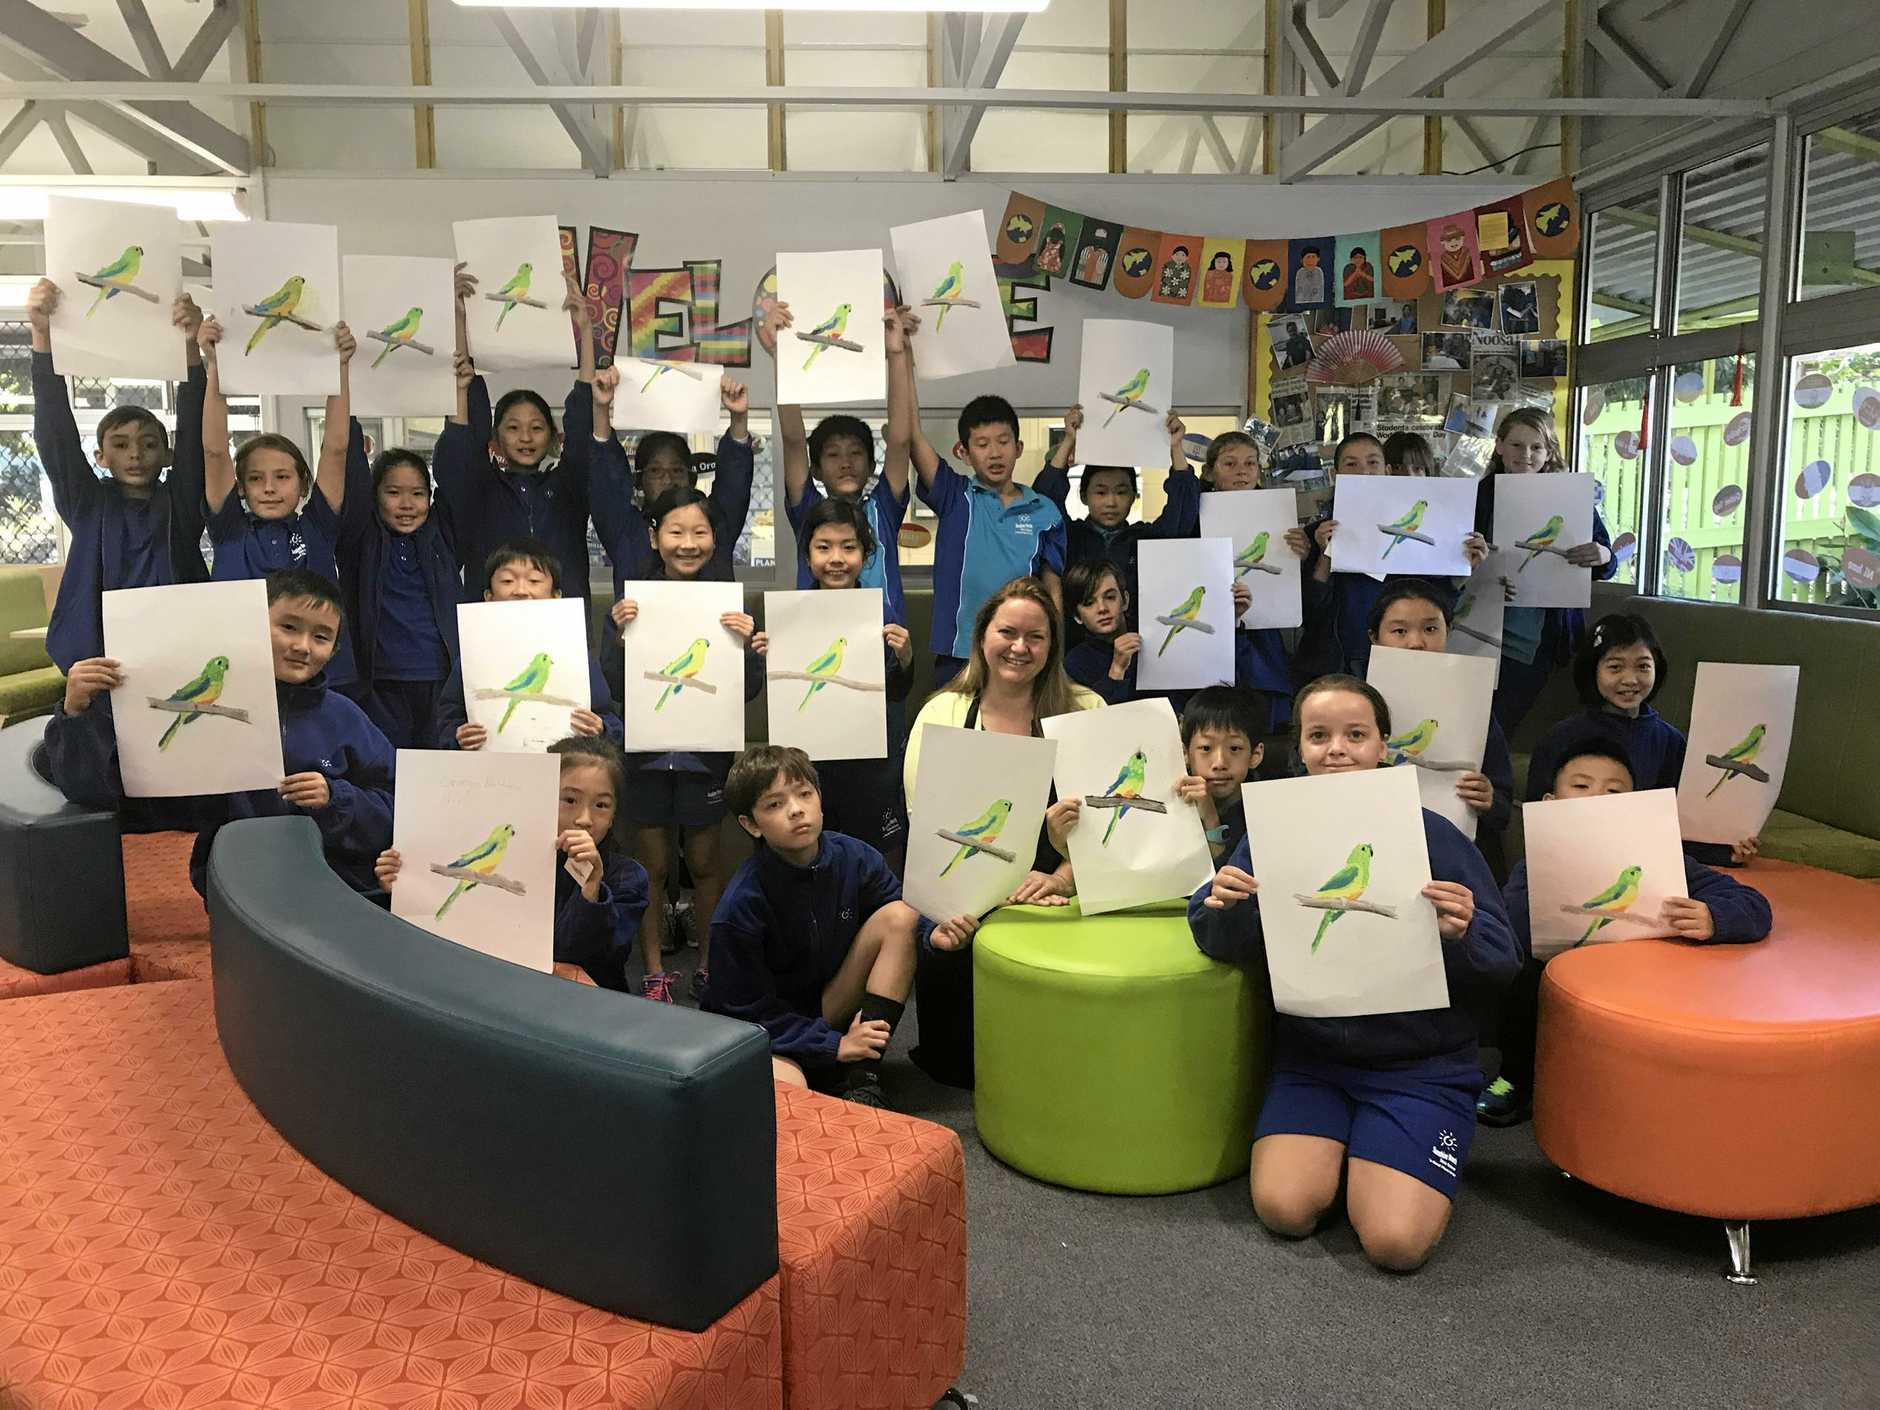 Sunshine Beach State School students show the results of their lesson from local artist Rachael Curry about drawing the critically endangered Orange Bellied Parrot.